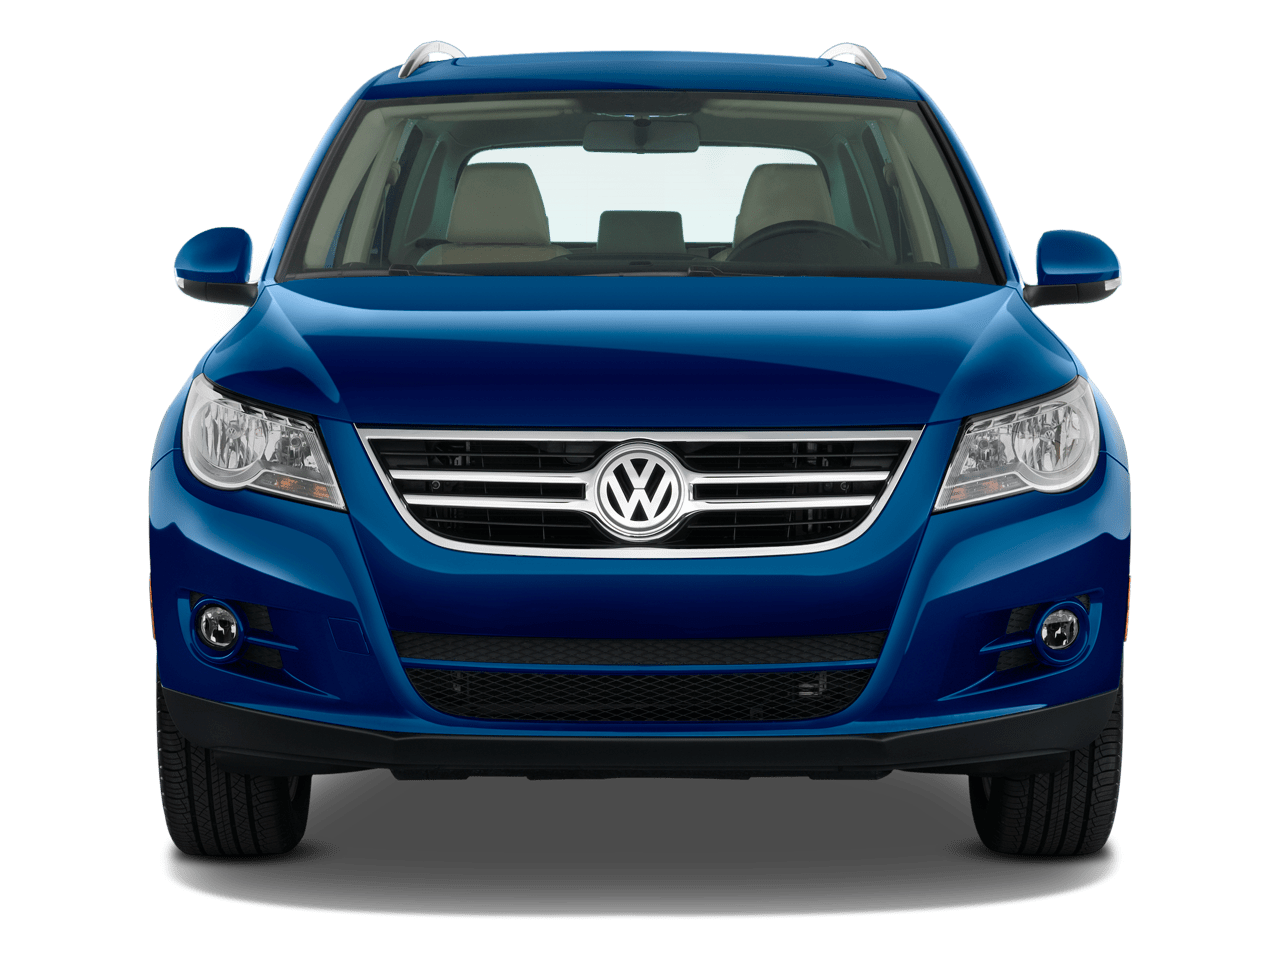 hight resolution of 2009 volkswagen tiguan reviews and rating motor trend 13 25 vw tiguan fuse box melted